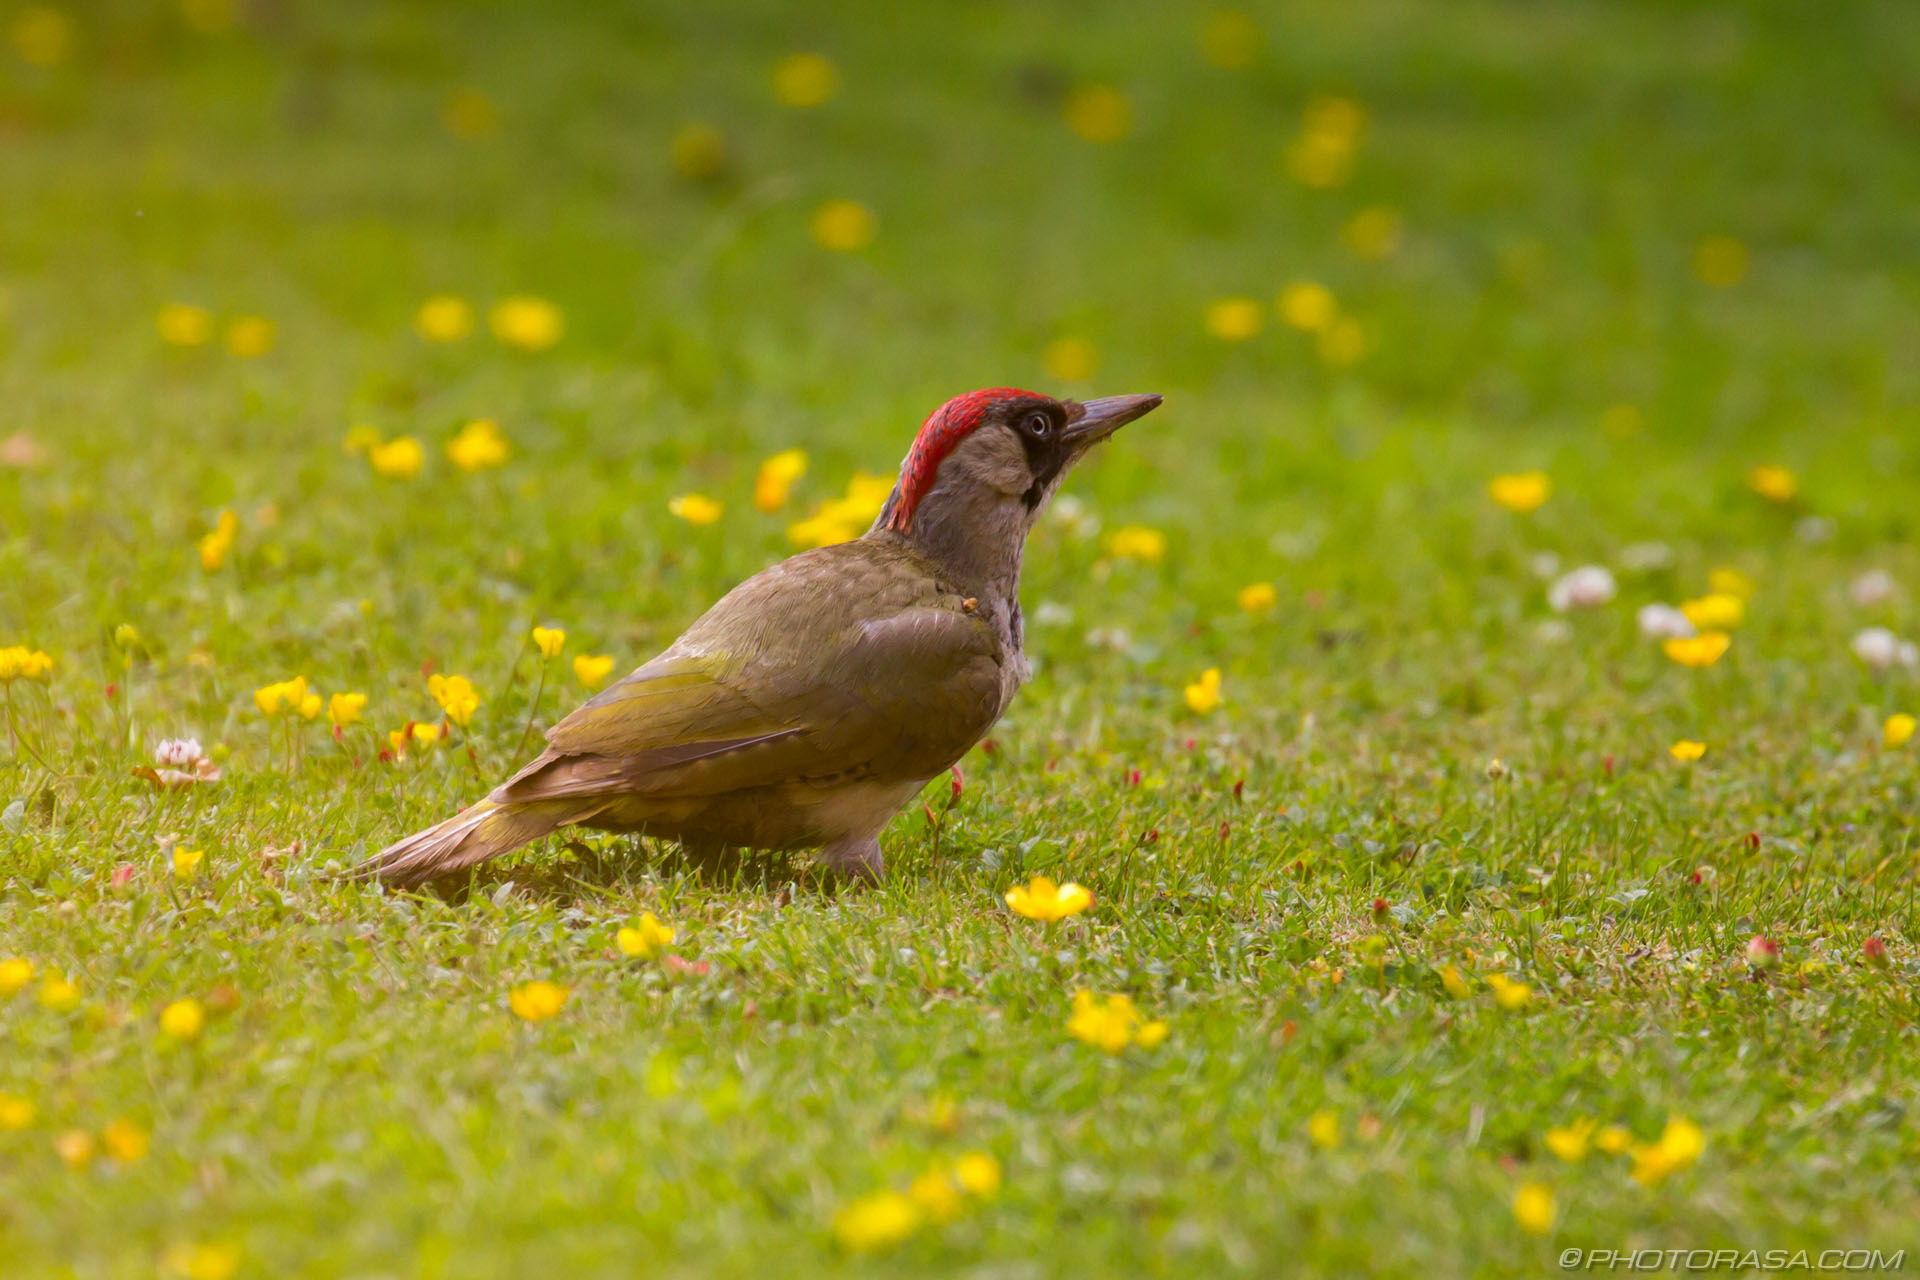 http://photorasa.com/green-woodpecker/woodpecker-among-the-buttercups/